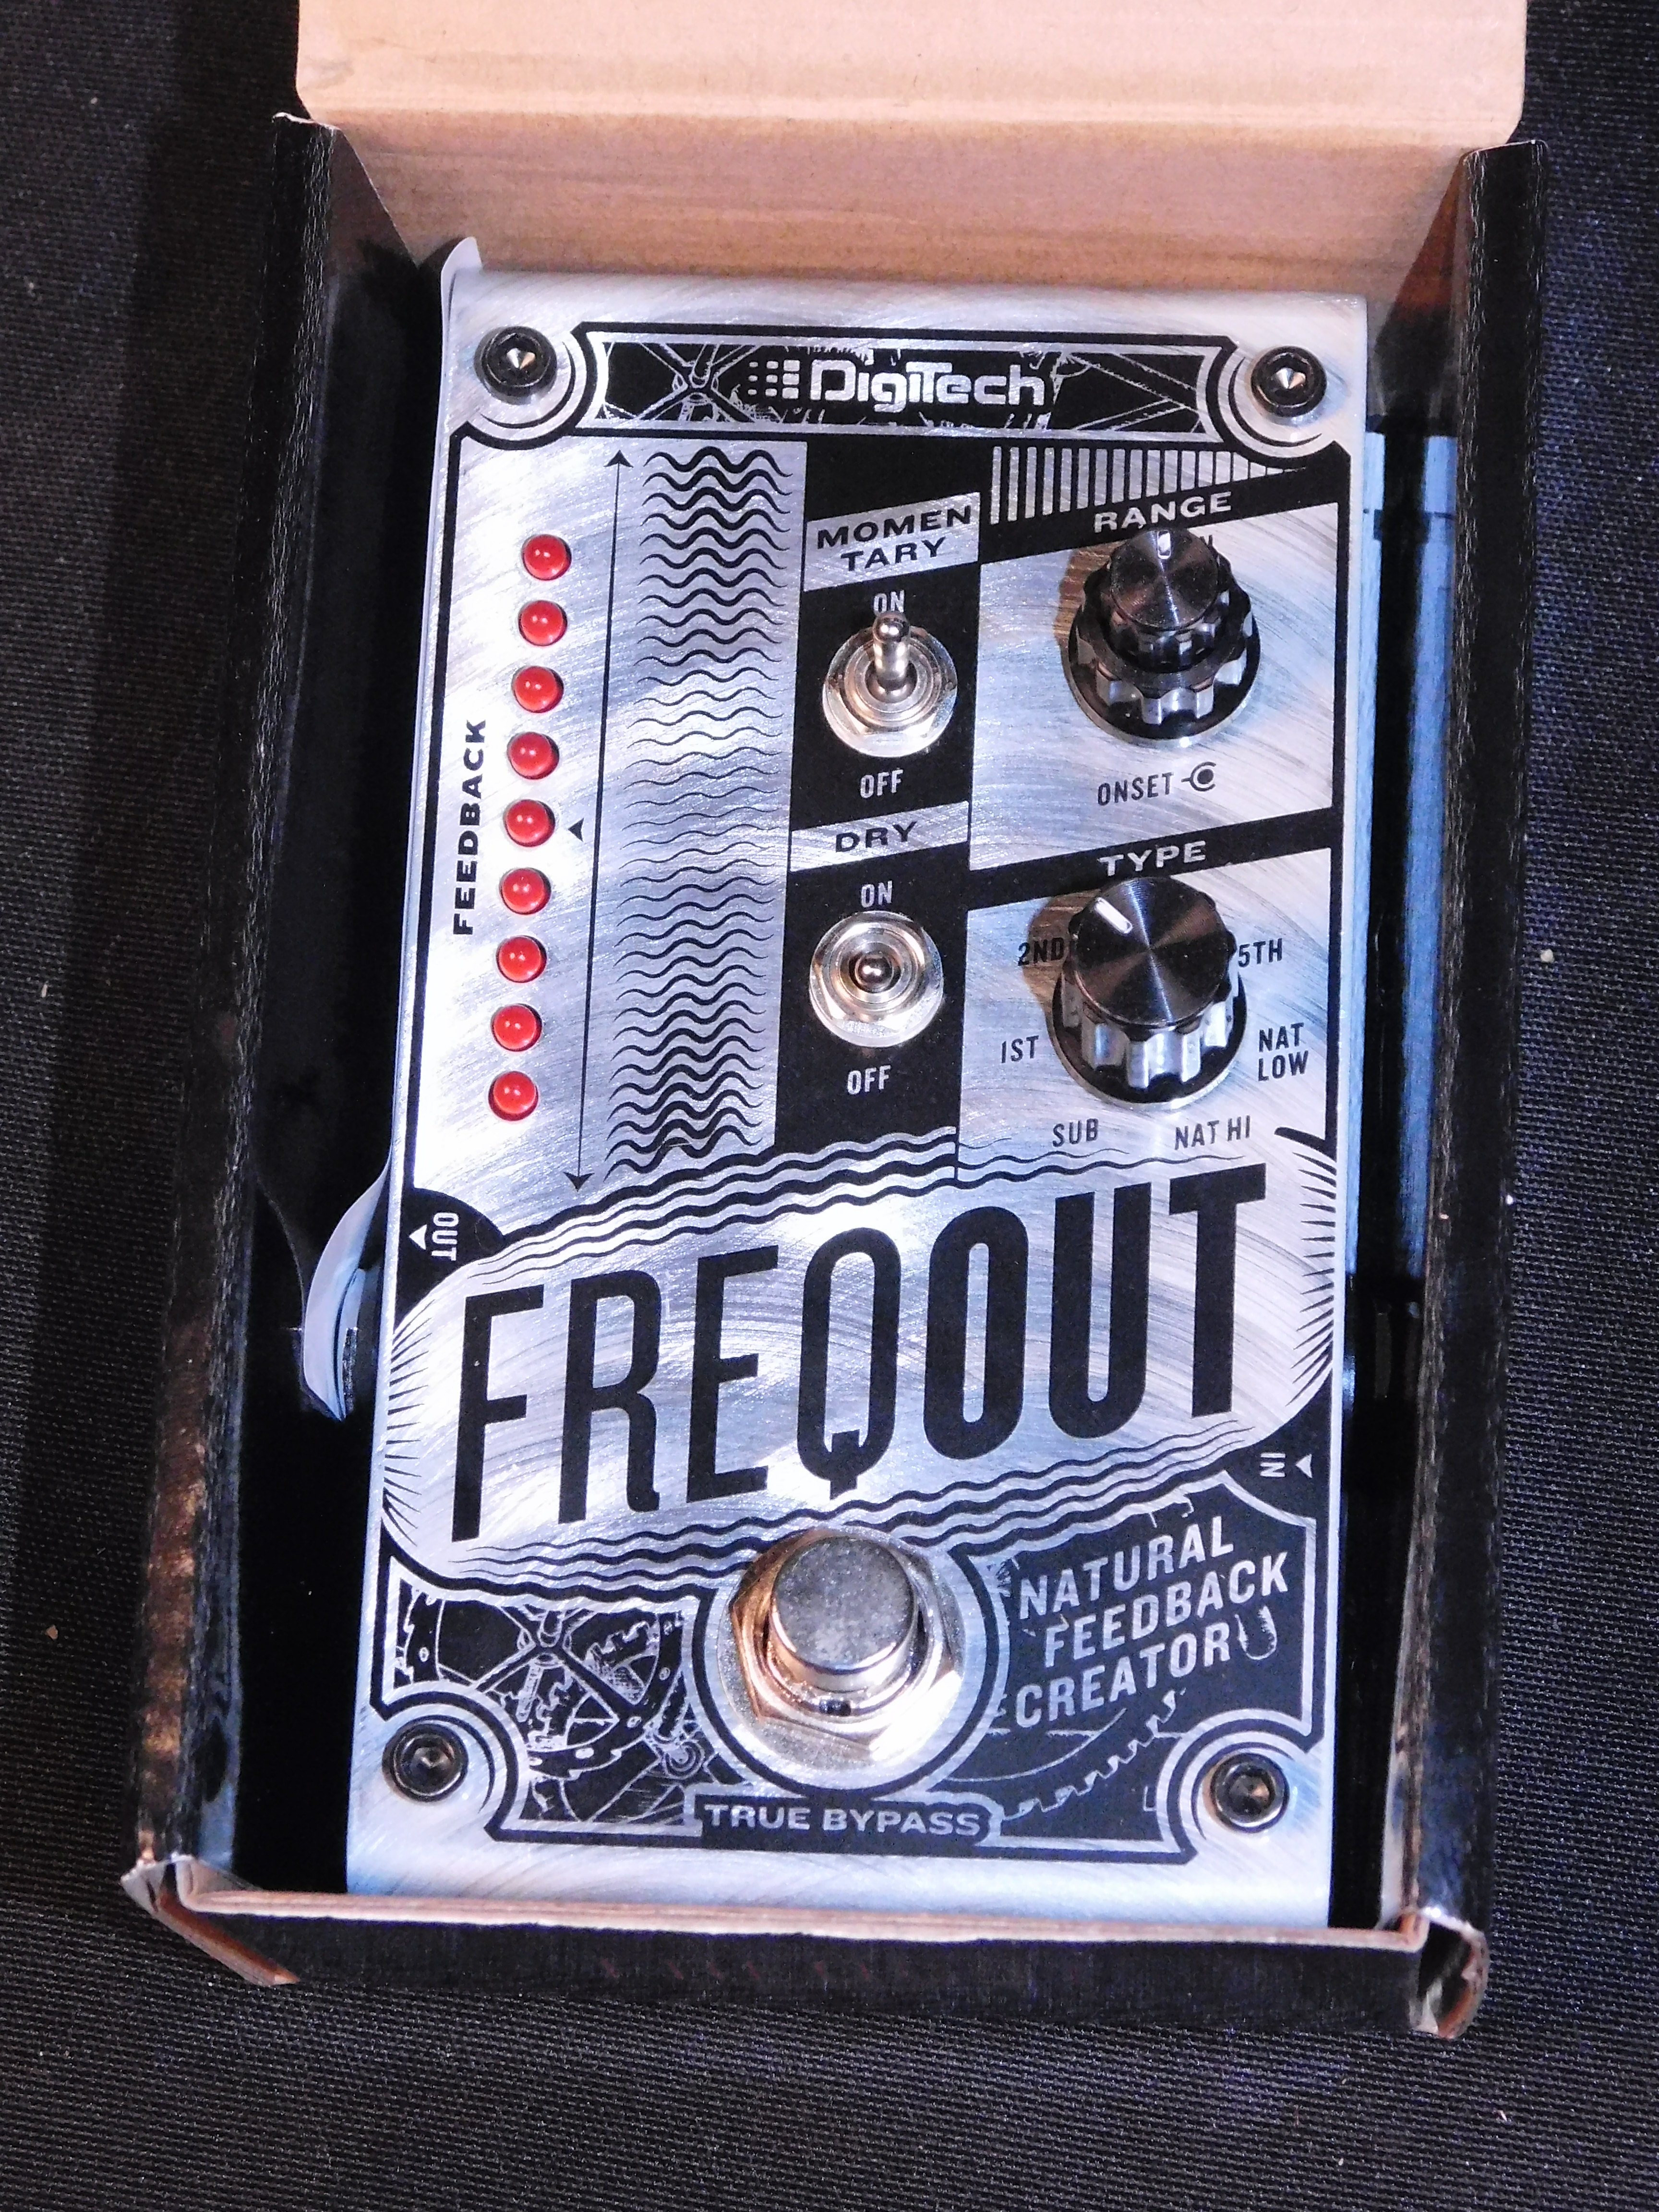 DIGITECH FREQOUT NATURAL FEEDBACK CREATOR FX PEDAL